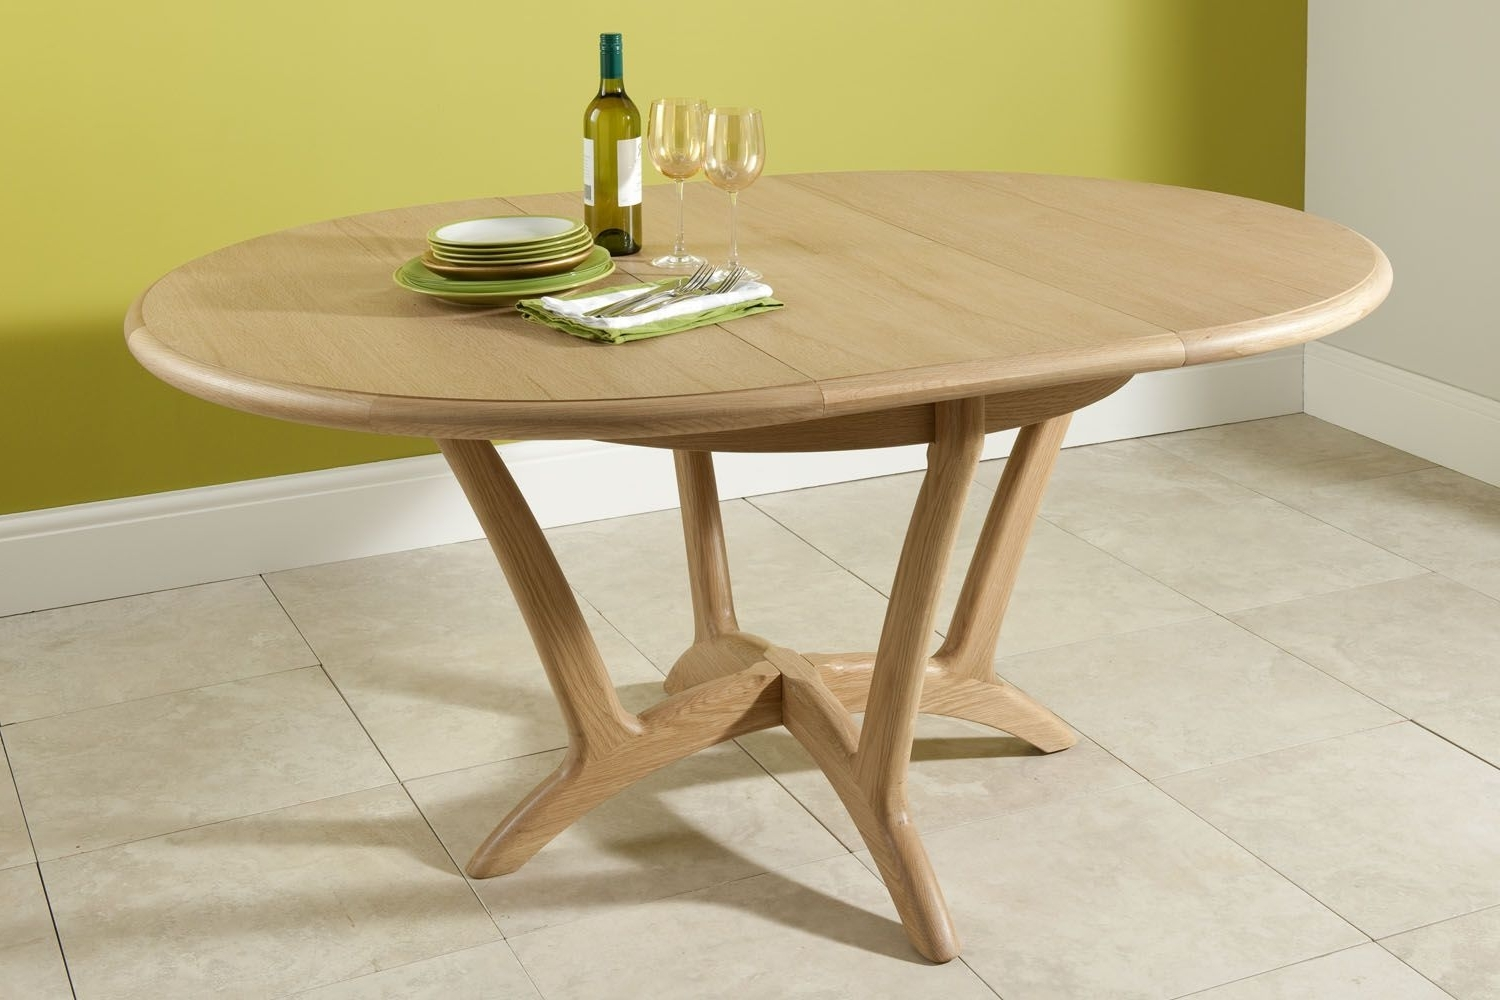 Round Extending Dining Tables And Chairs Intended For Well Liked Simple Extending Dining Table And Chairs (View 6 of 25)